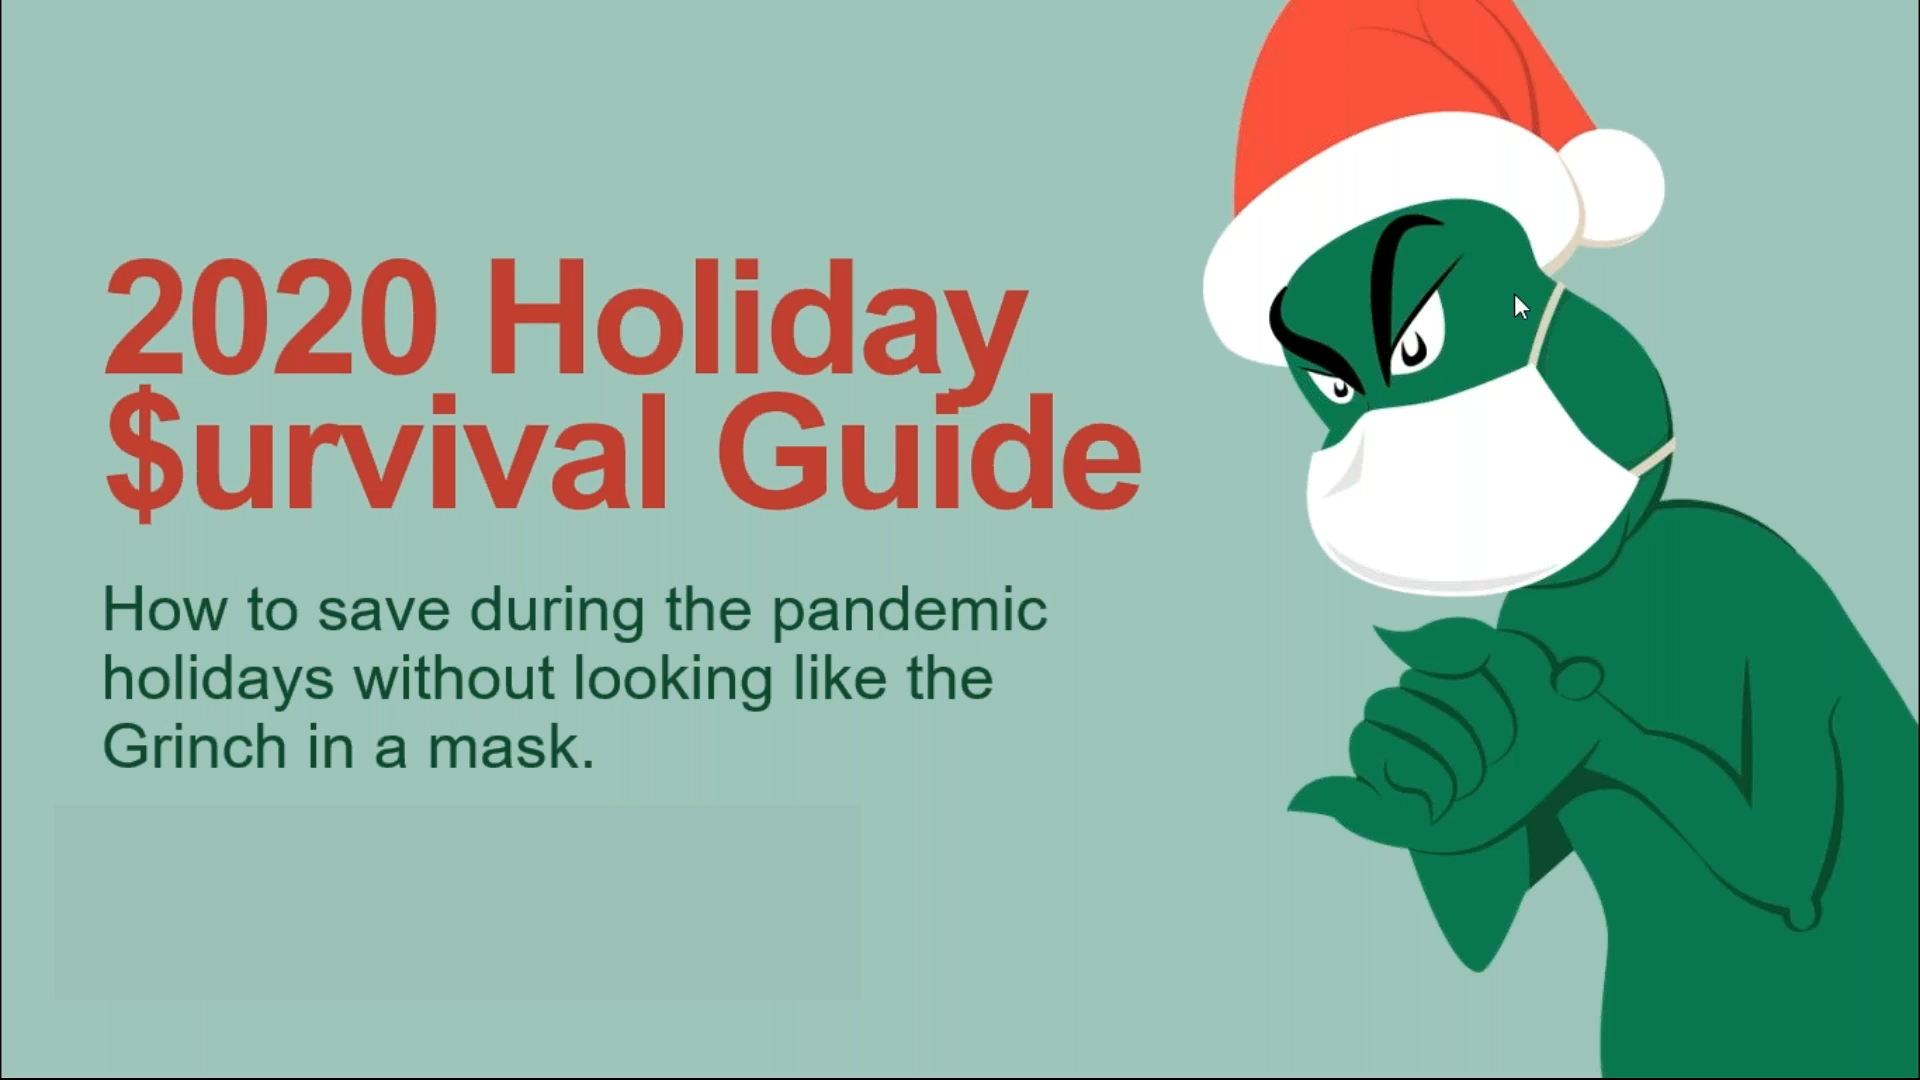 2020 Holiday $urvival Guide Thumbnail